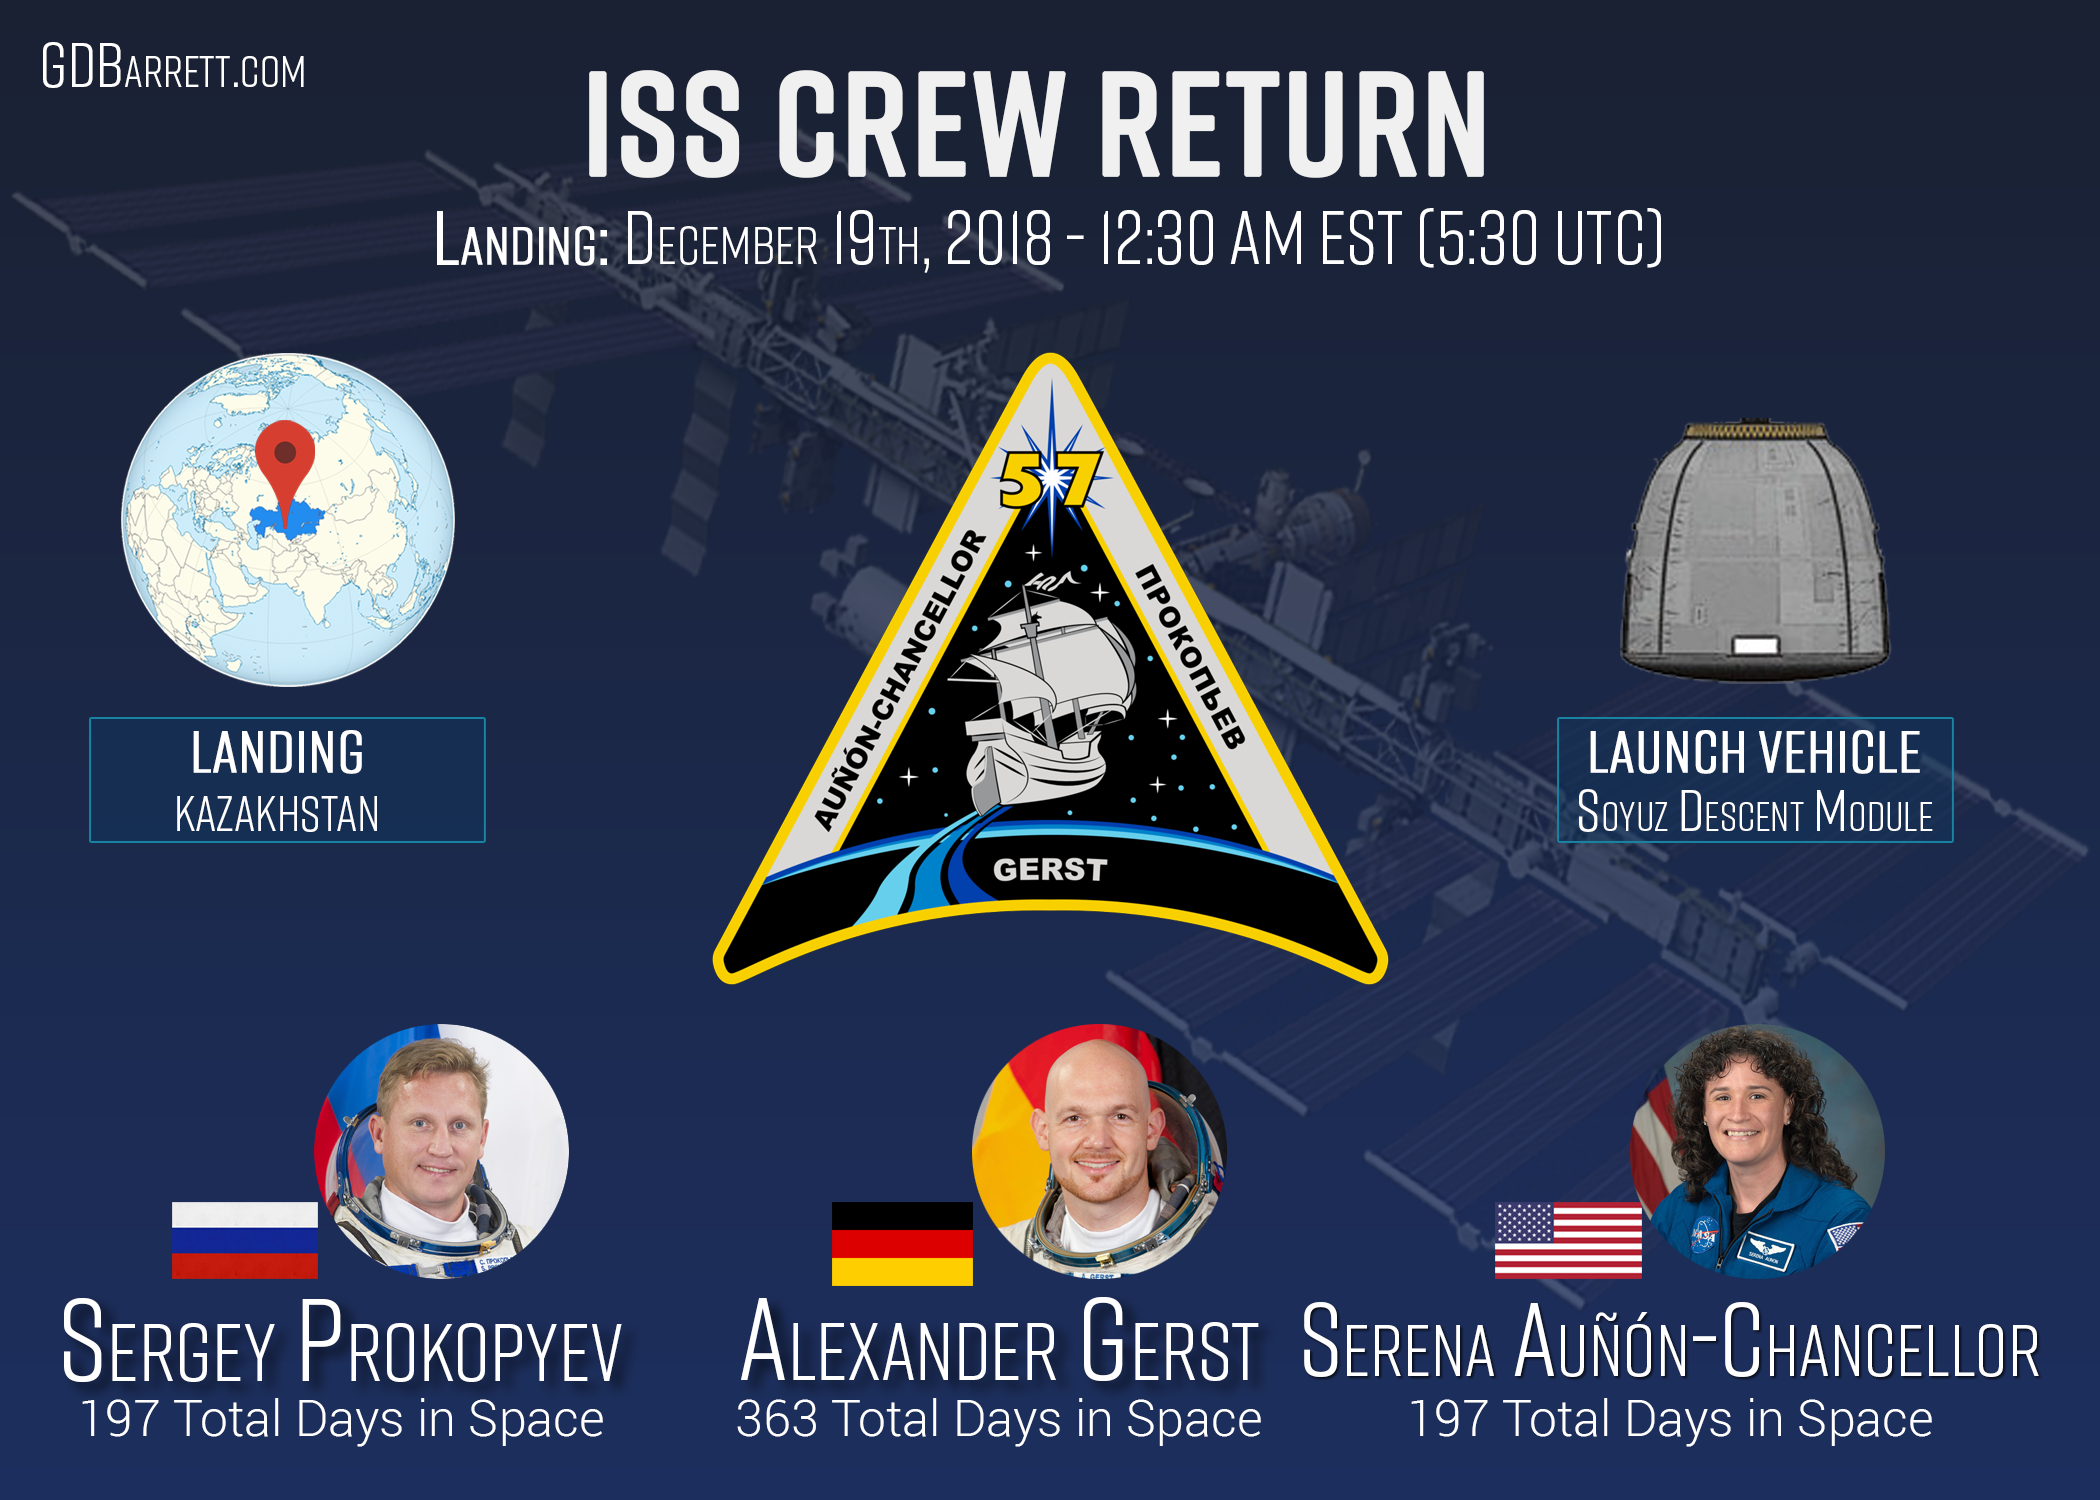 ISS Crew Return Expedition 58